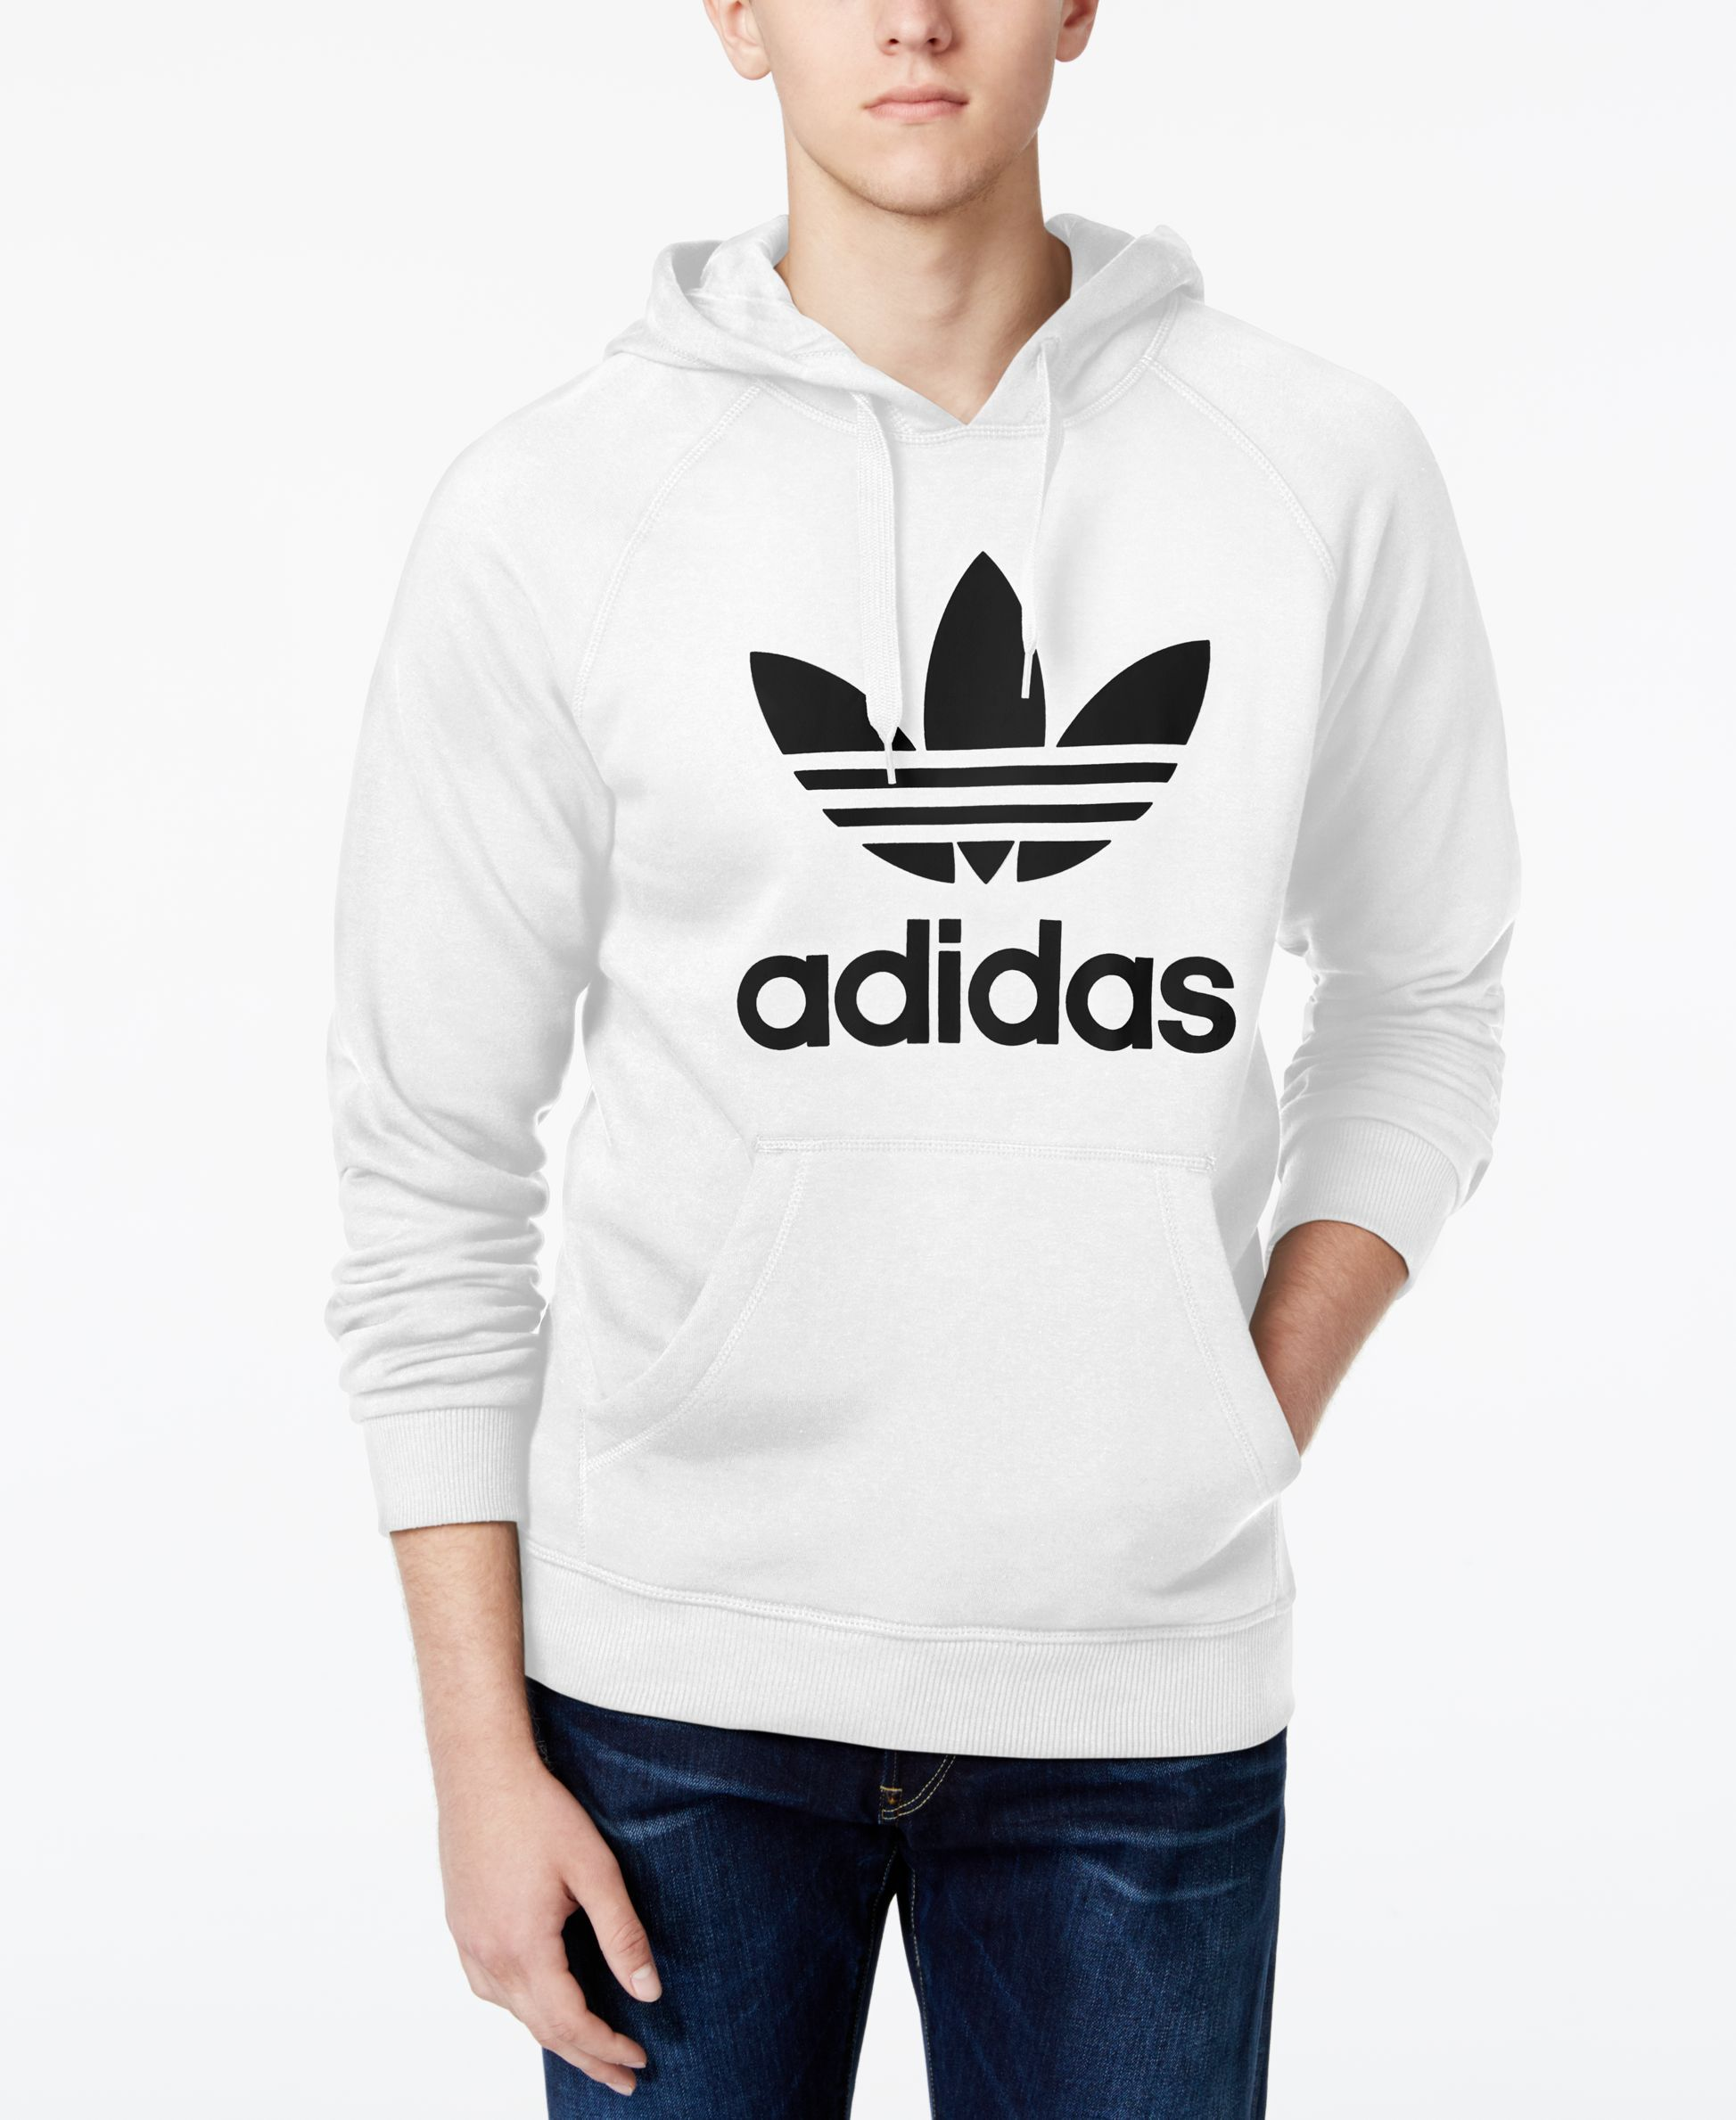 Roll with an Old School look with this simple hoodie from adidas Originals,  featuring the